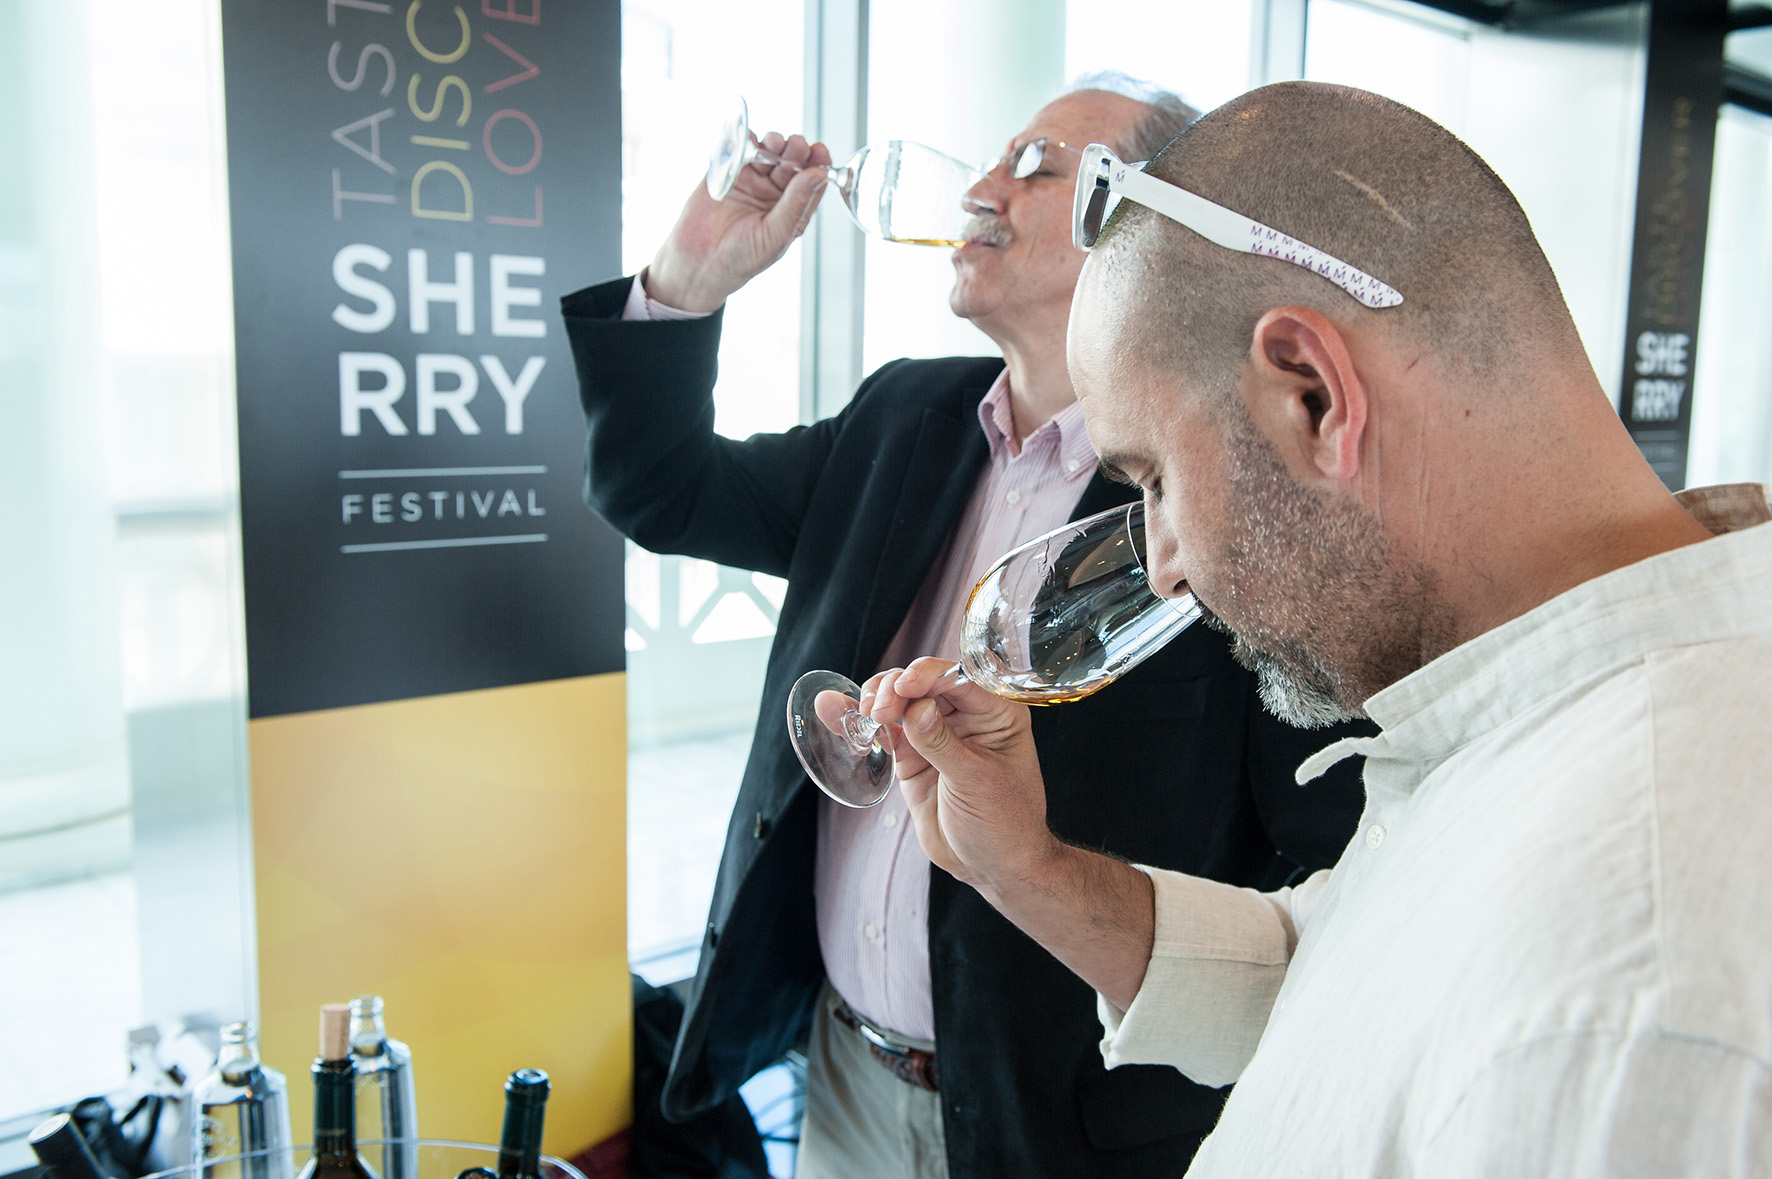 showroom sherry festival valencia